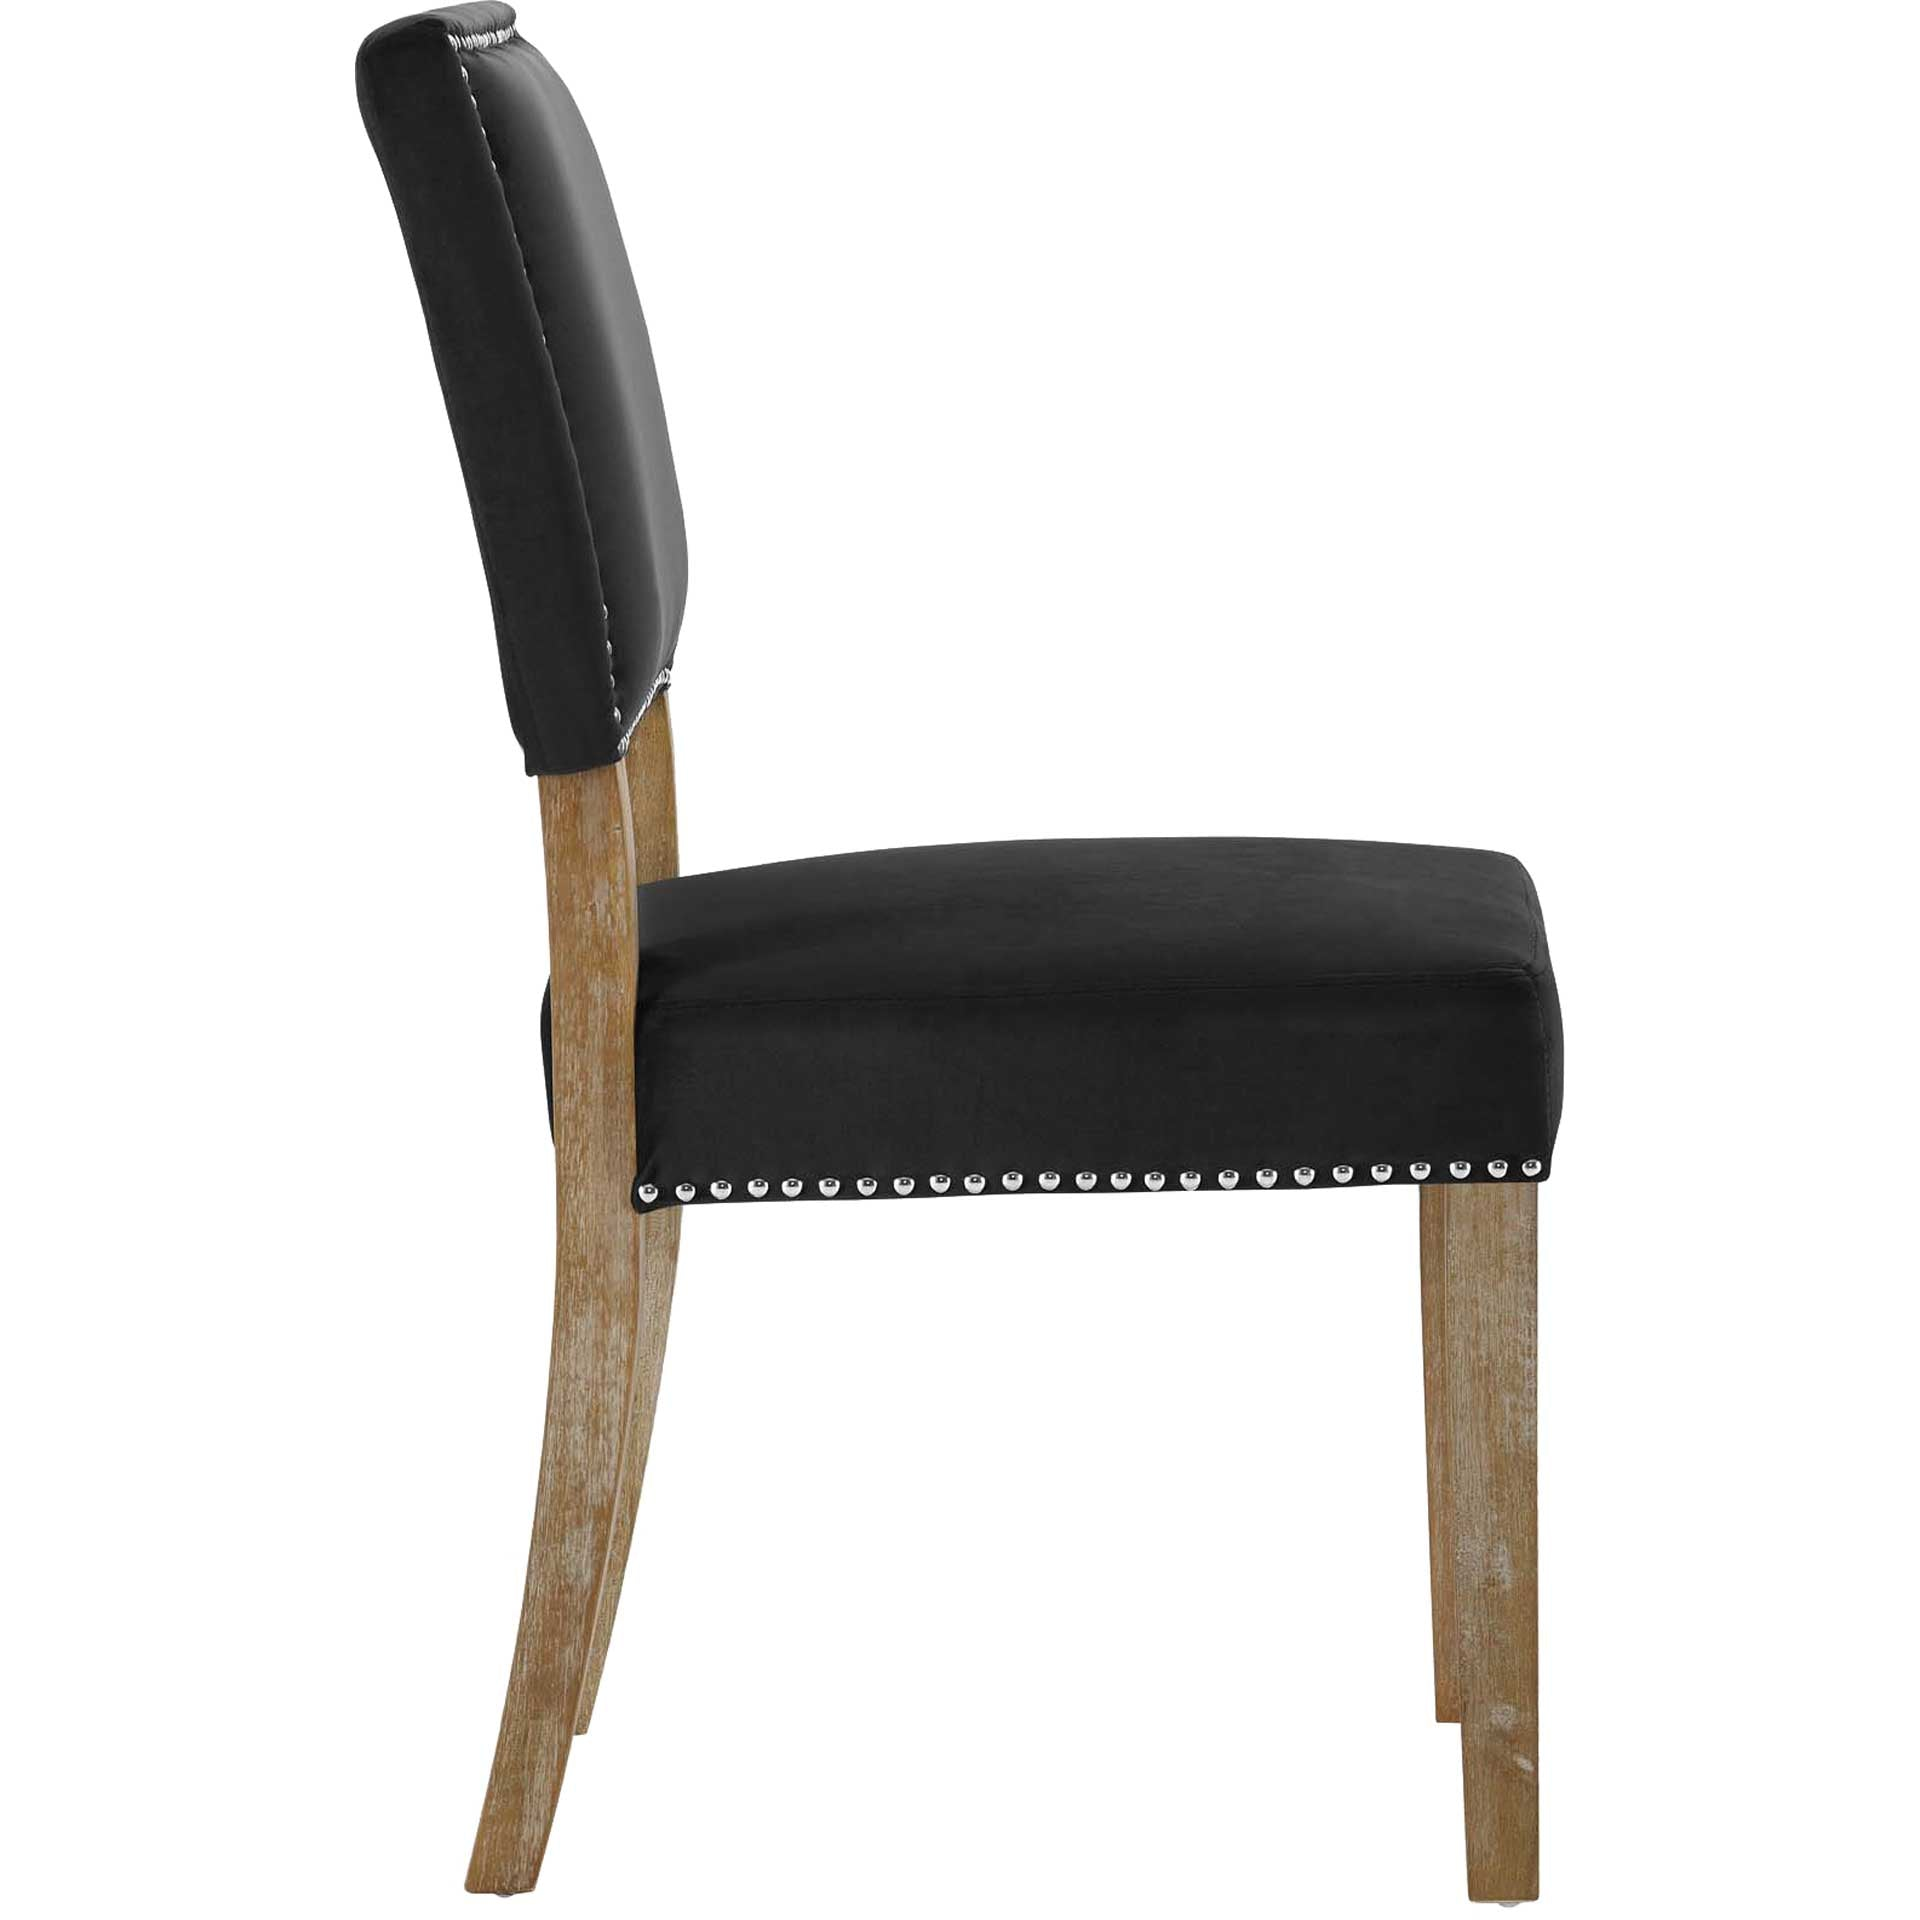 Orwen Wood Dining Chair Black